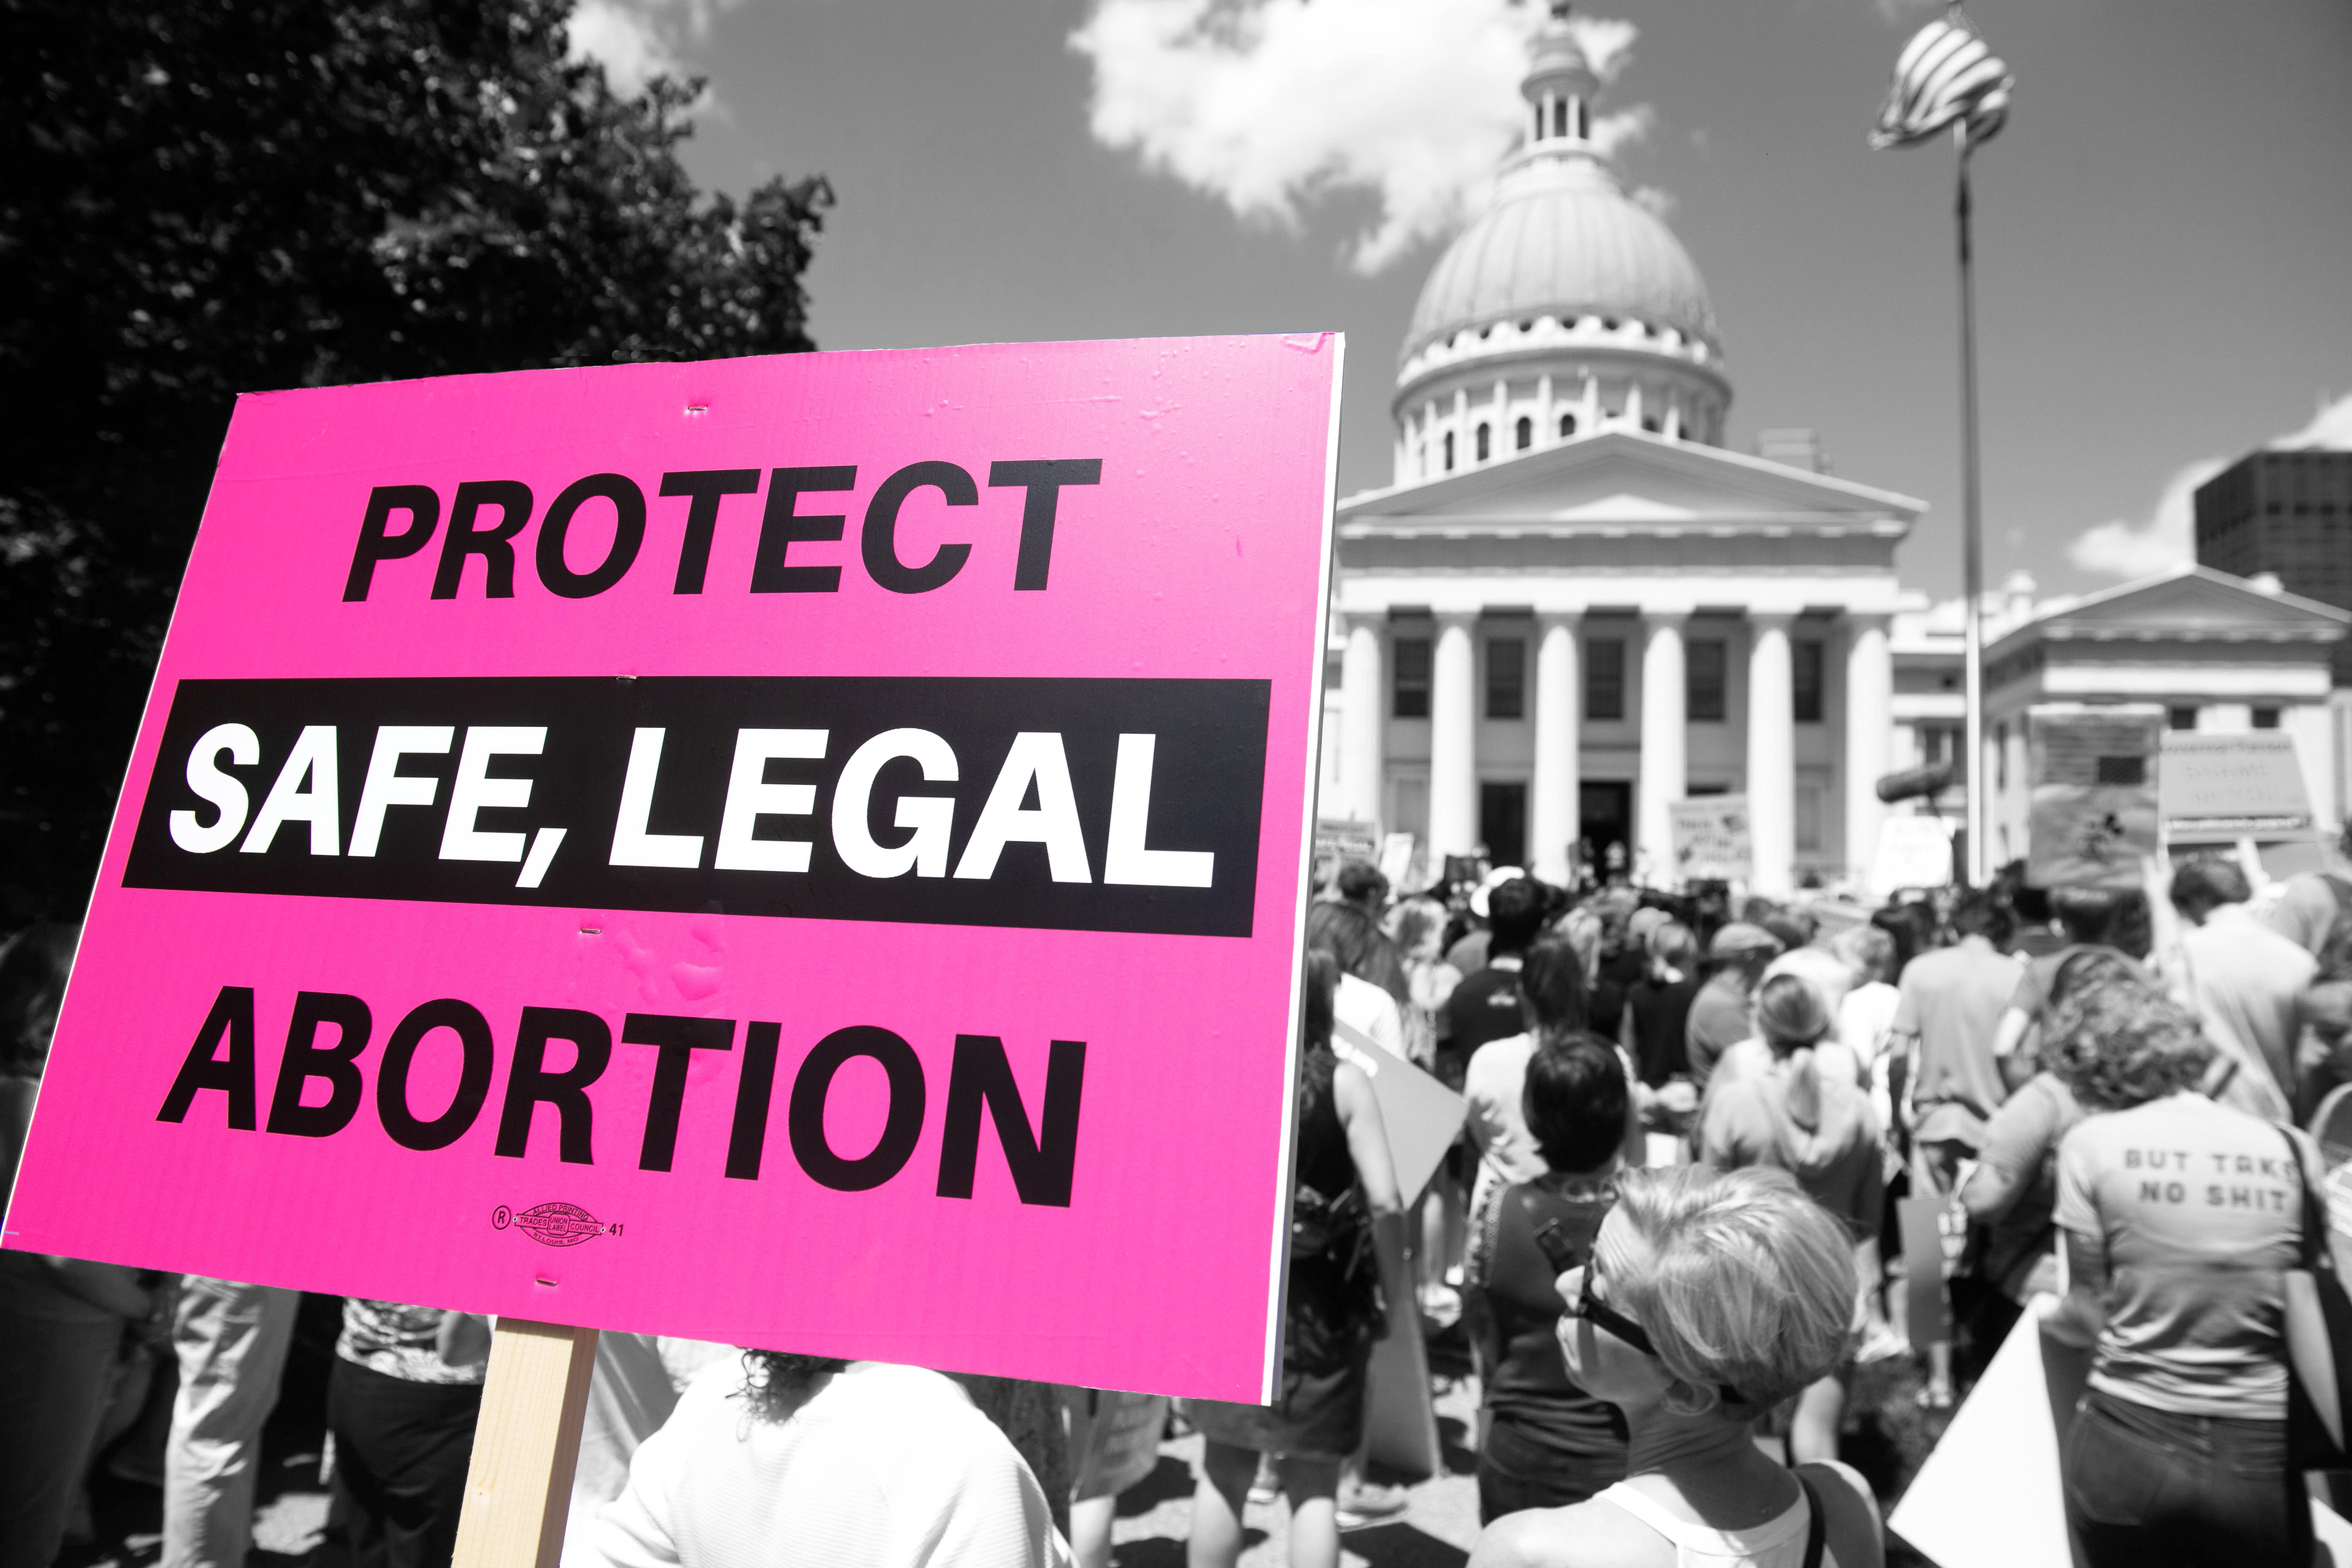 This Spring, Abortion Bans Swept the Nation. This Fall, We Can Fight Back.